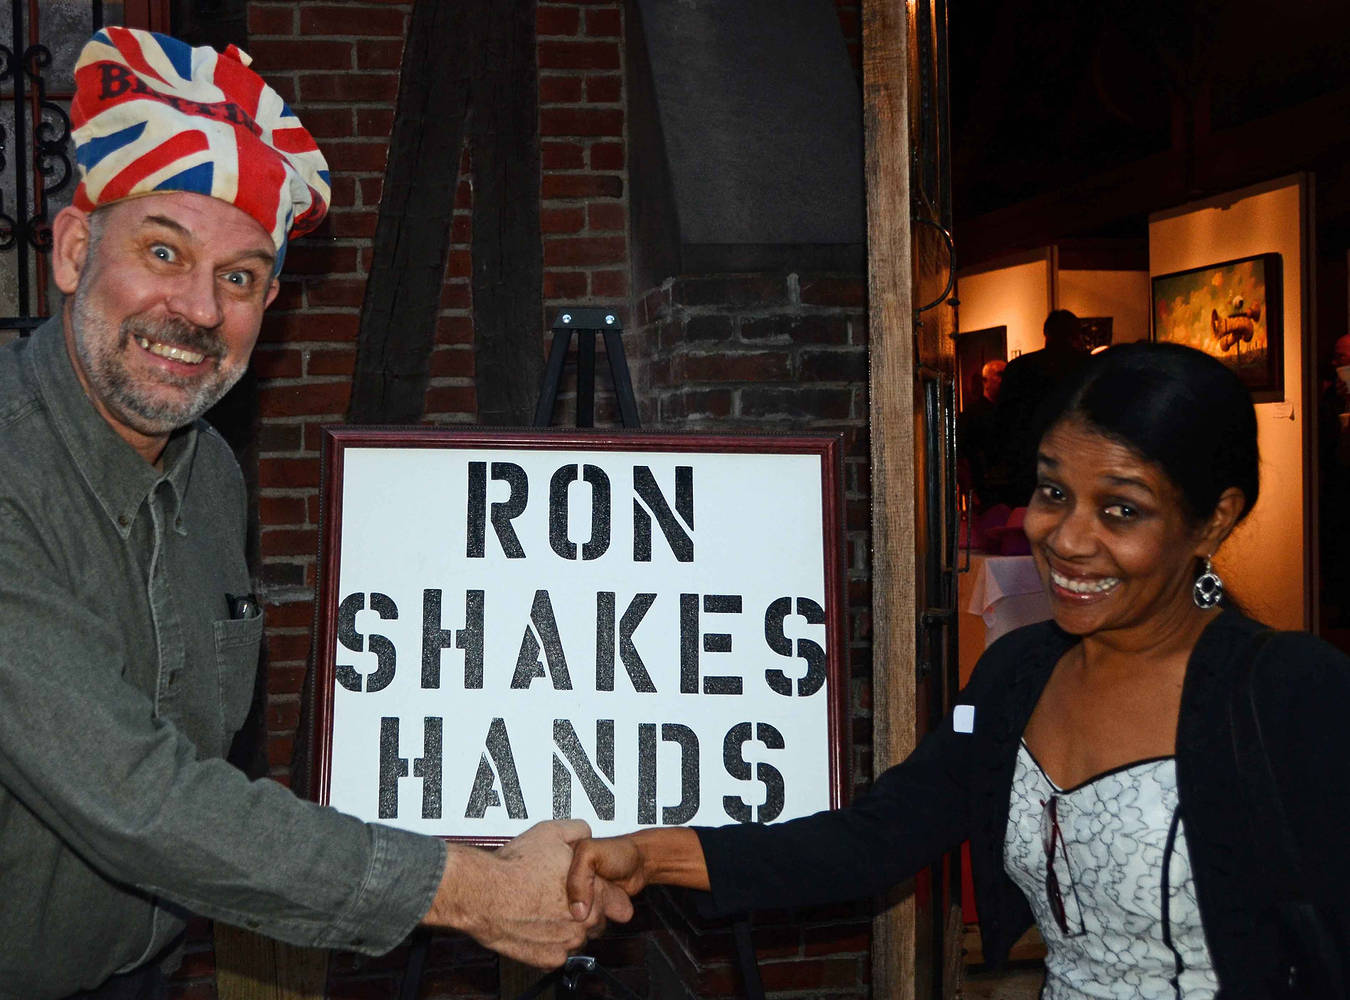 Ron Shakes Hands by Ron Crowcroft